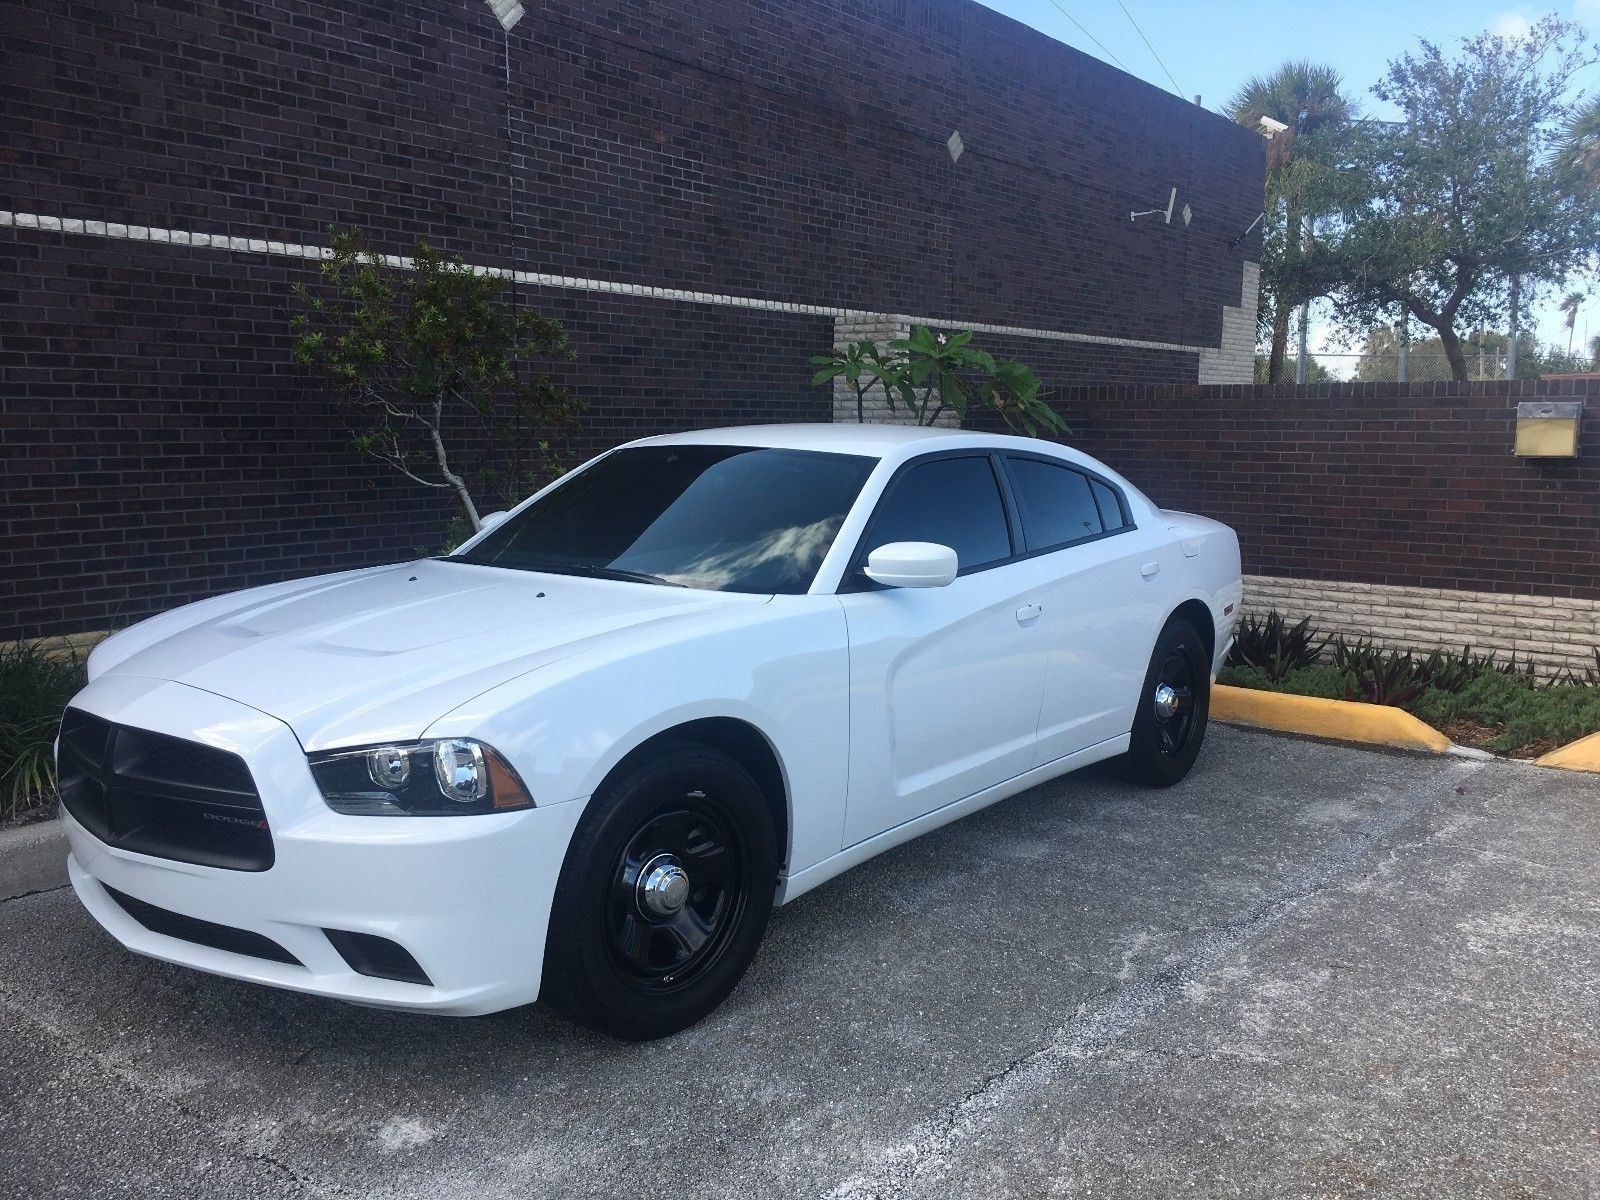 2014 Dodge Charger Police Pursuit Dodge Charger 2014 Dodge Charger Dodge